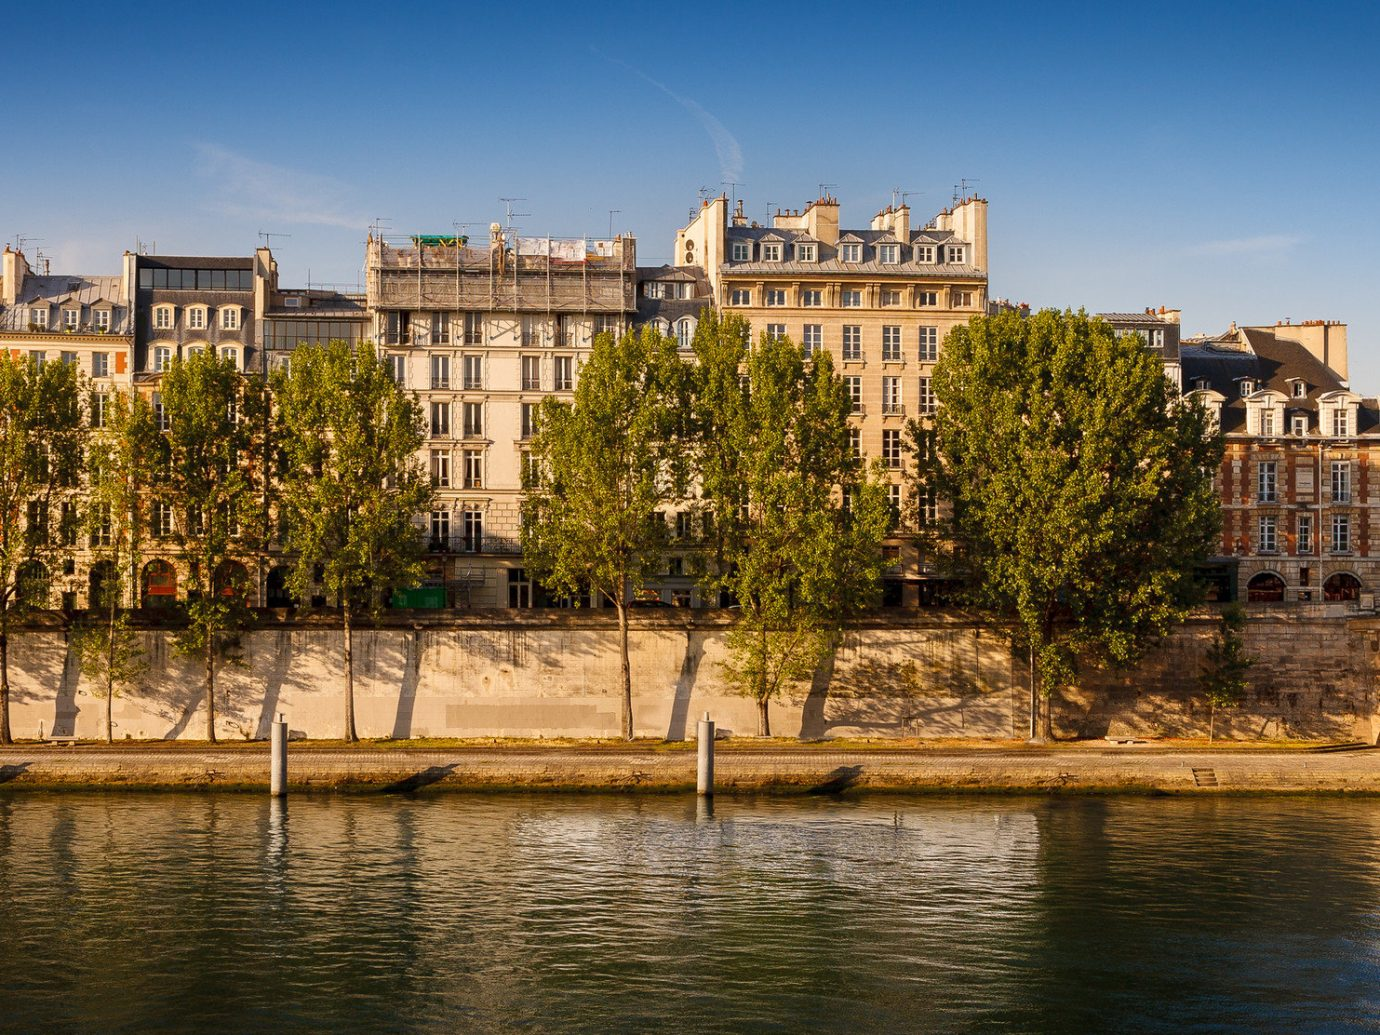 France Paris Trip Ideas water outdoor sky landmark River building reflection City Town human settlement cityscape Architecture tourism palace waterway plaza château panorama